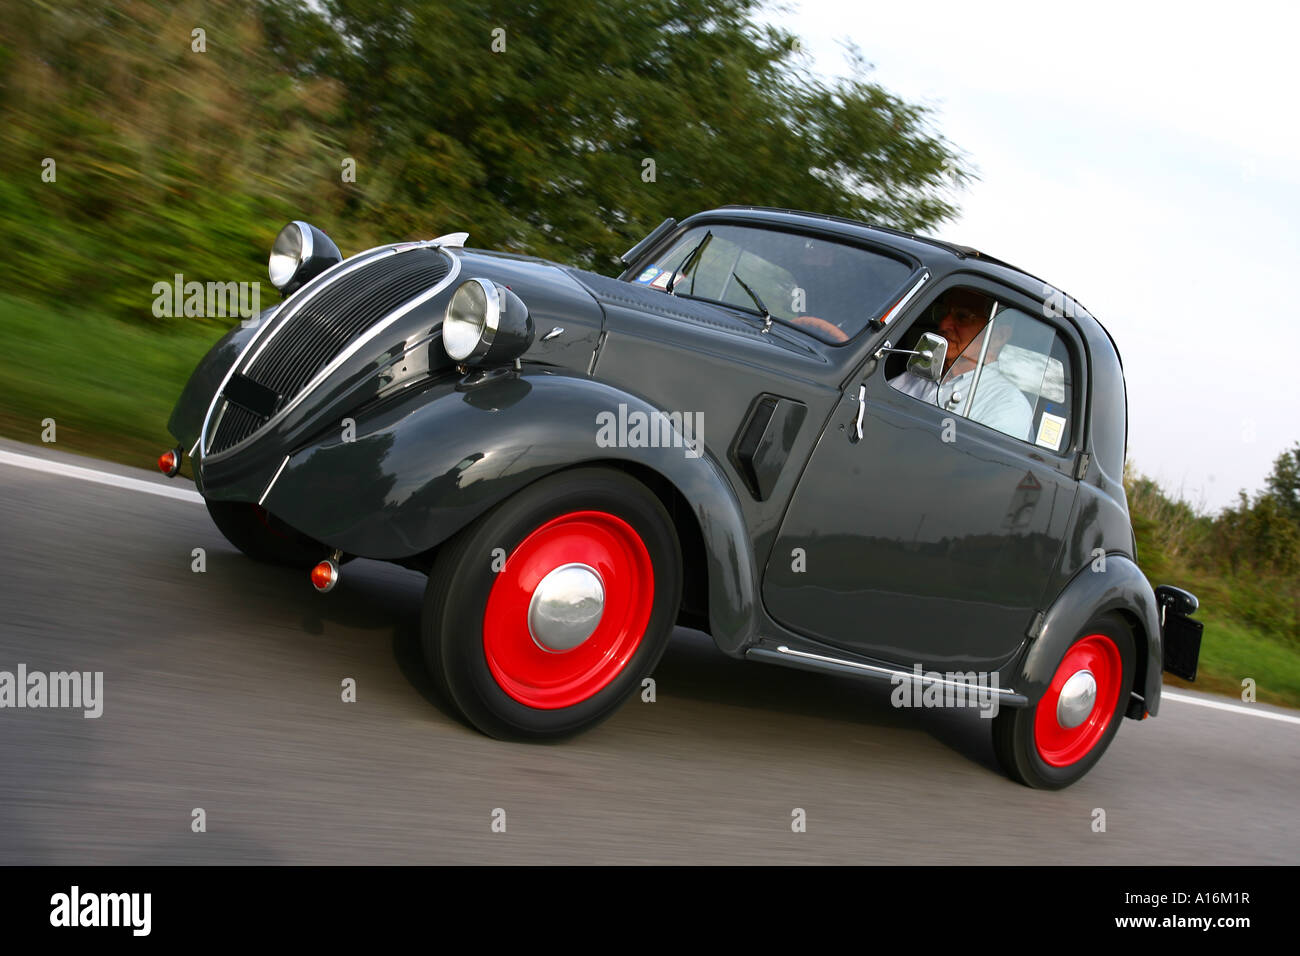 fiat topolino b stock photo, royalty free image: 10161106 - alamy